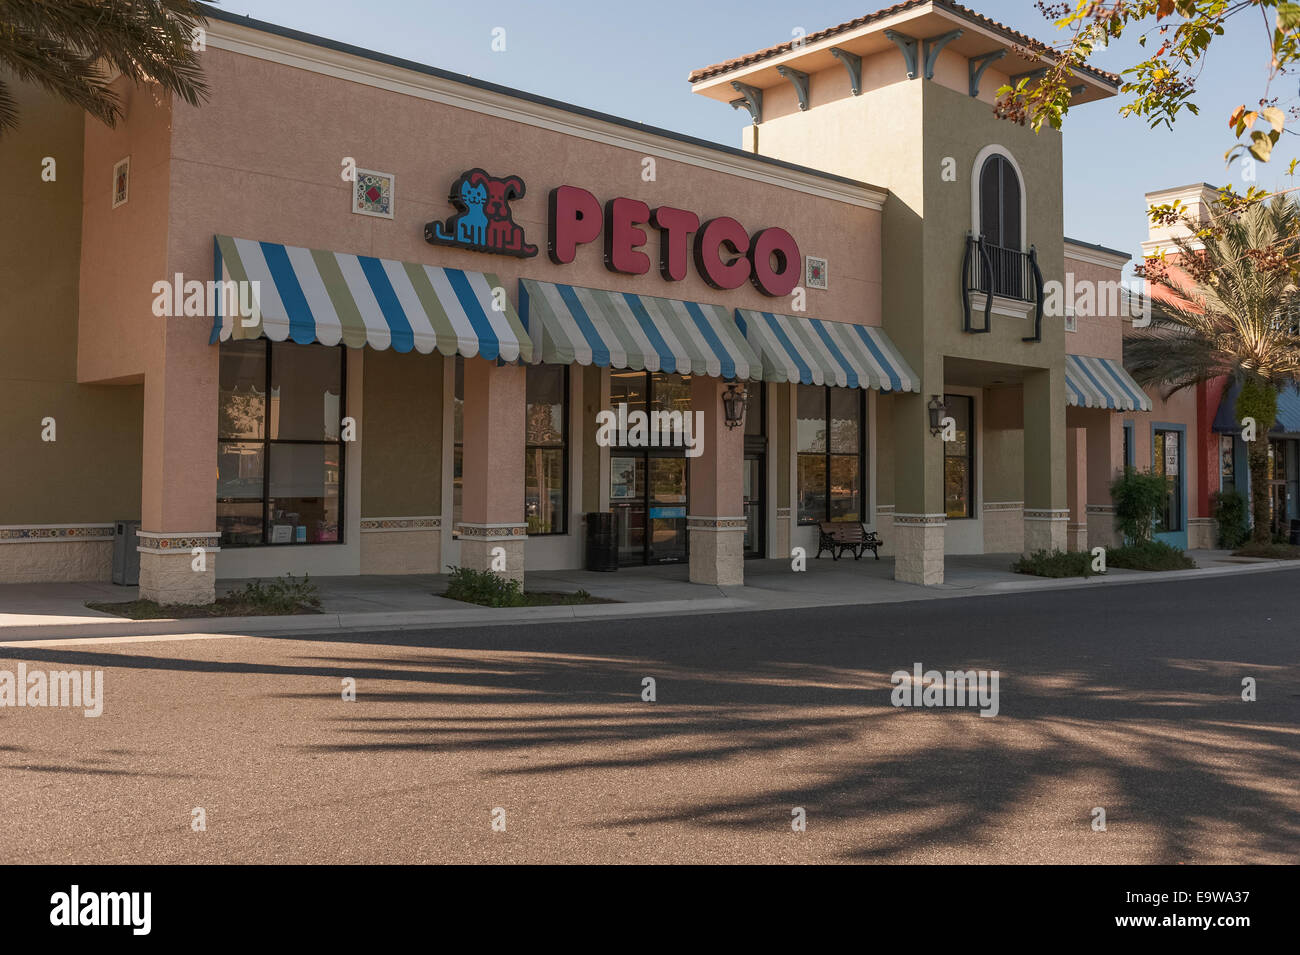 Petco Pet Supplies located in Lady Lake, Florida USA - Stock Image